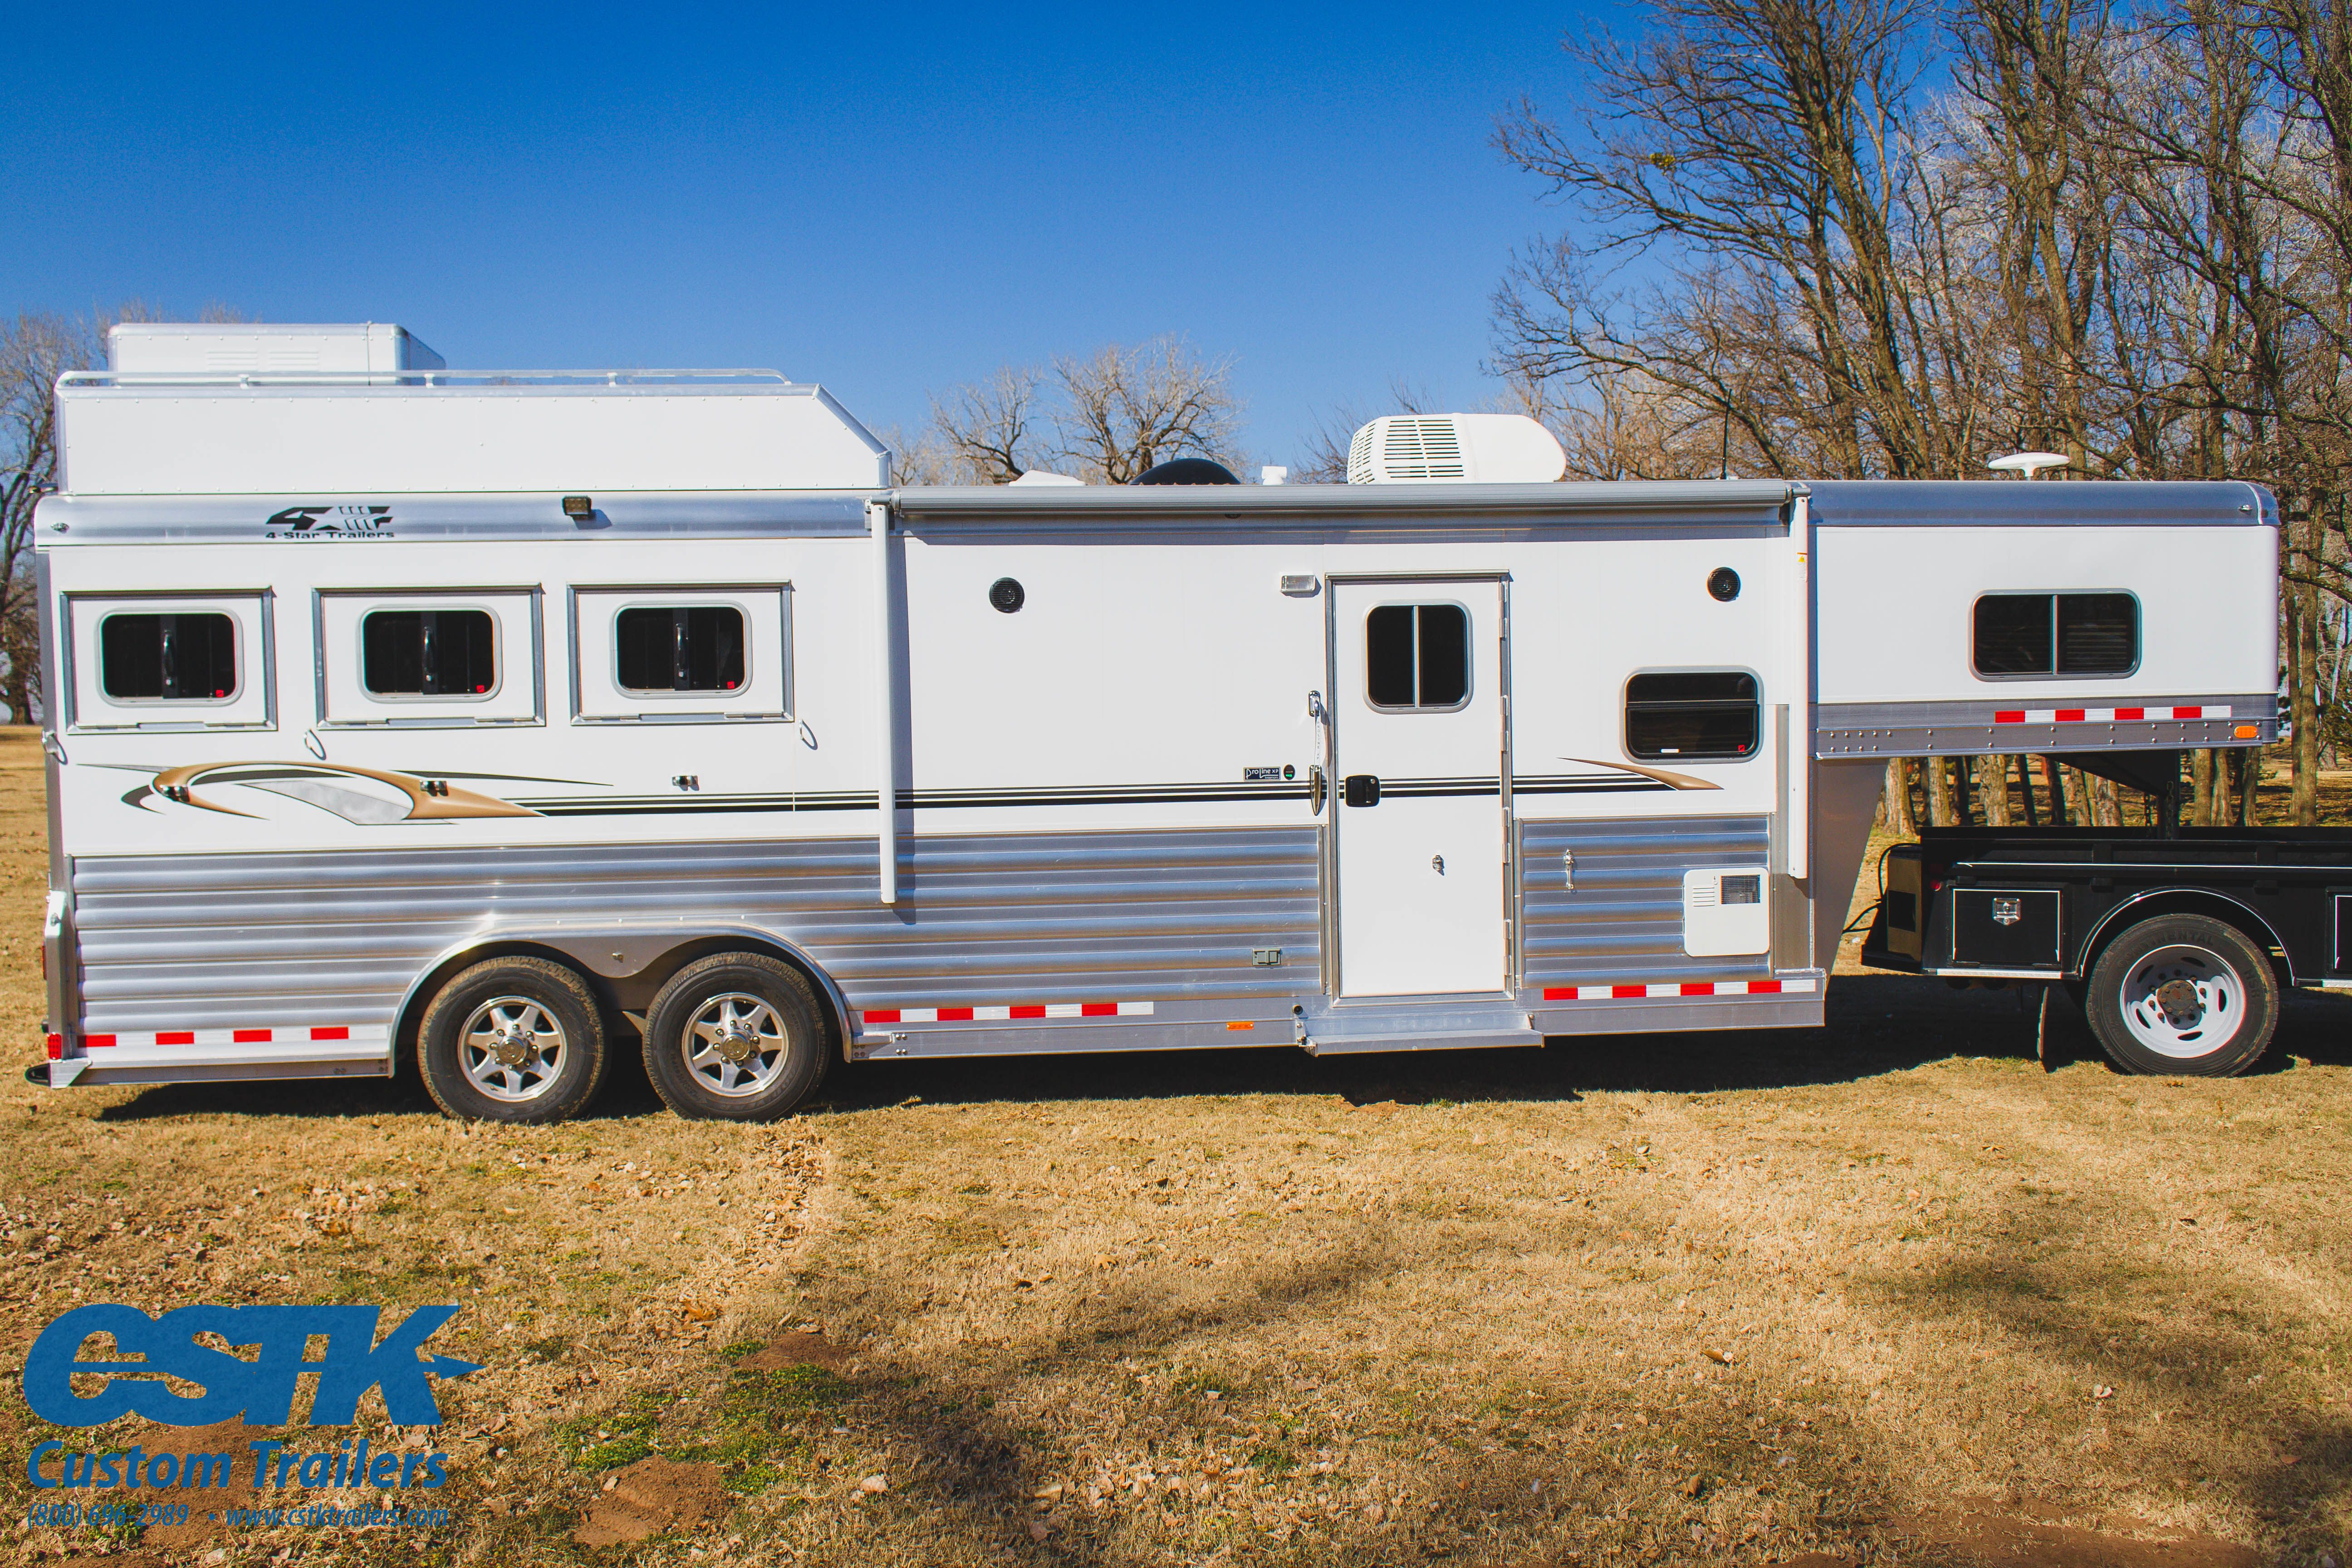 Horse trailers agricultural equipment horse trailers